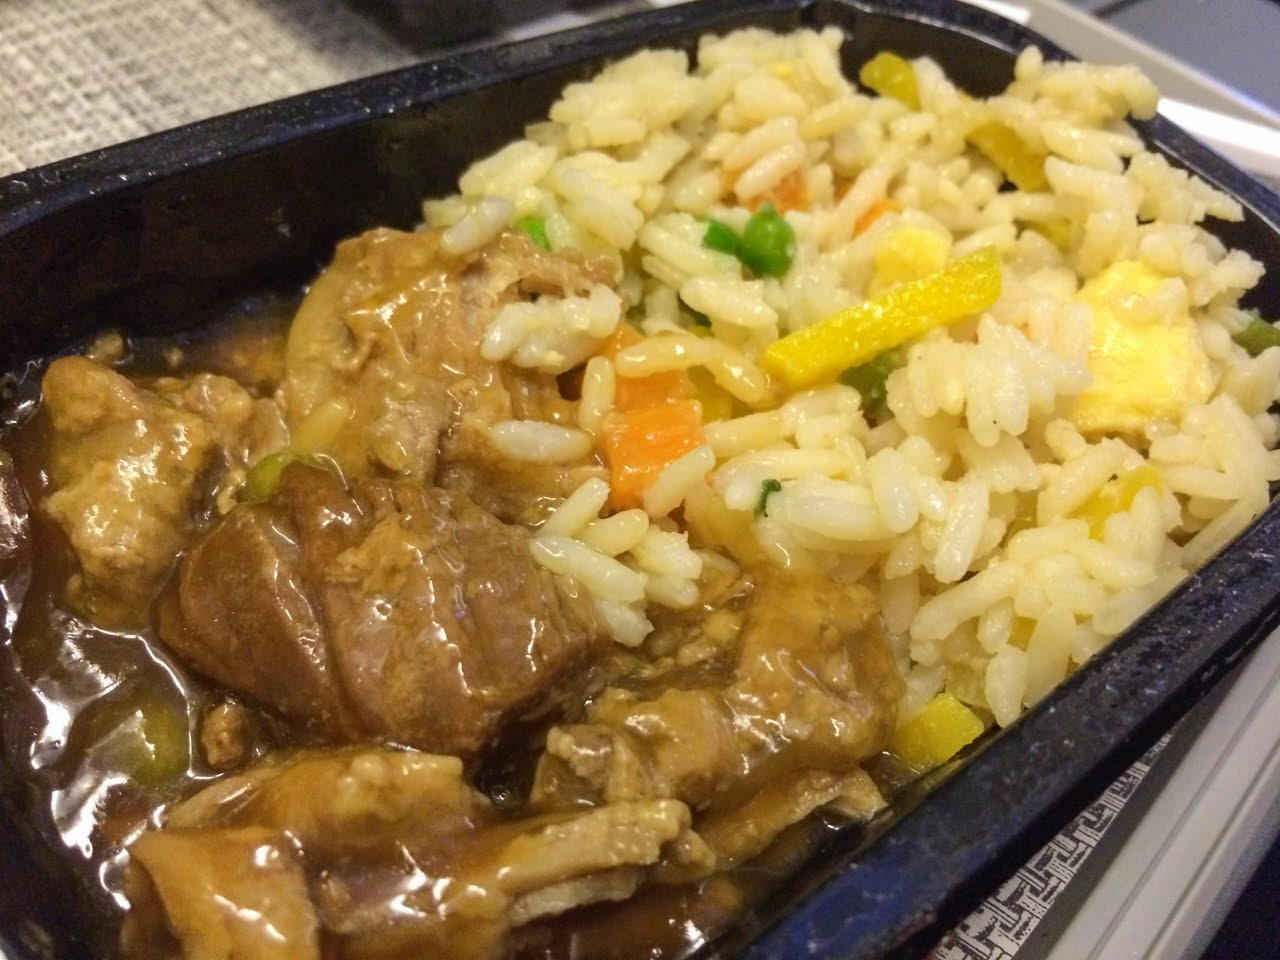 Pork teriyaki with rice